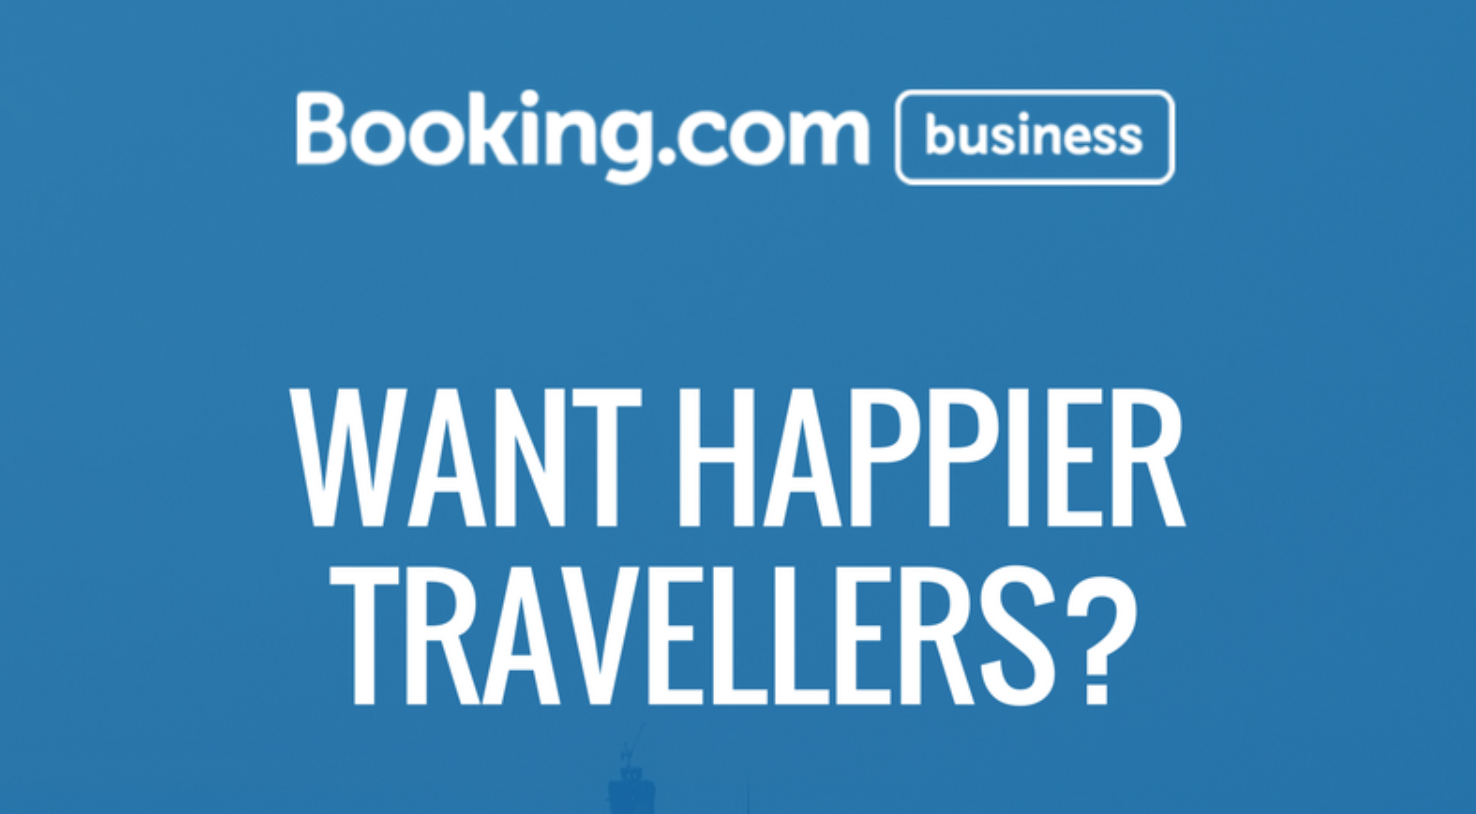 Want Happier Travellers? Focus on These Four Areas | Booking.com for Business